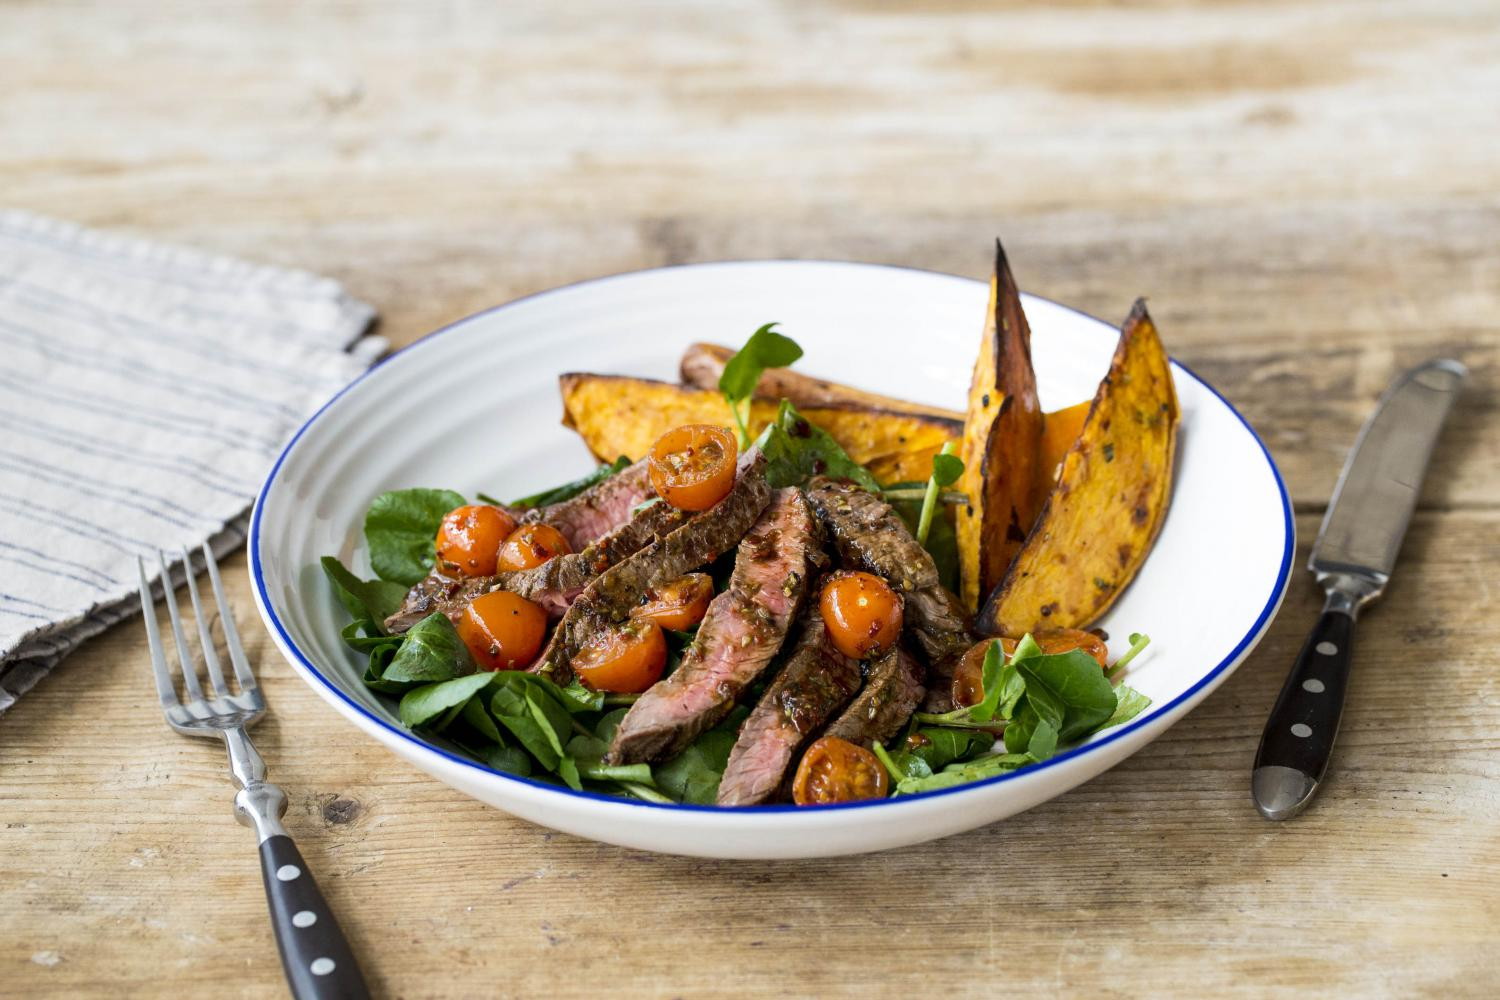 TAGLIATA_WITH_ROASTED_SWEET_POTATO_WEDGES_&_WATERCRESS_SALAD